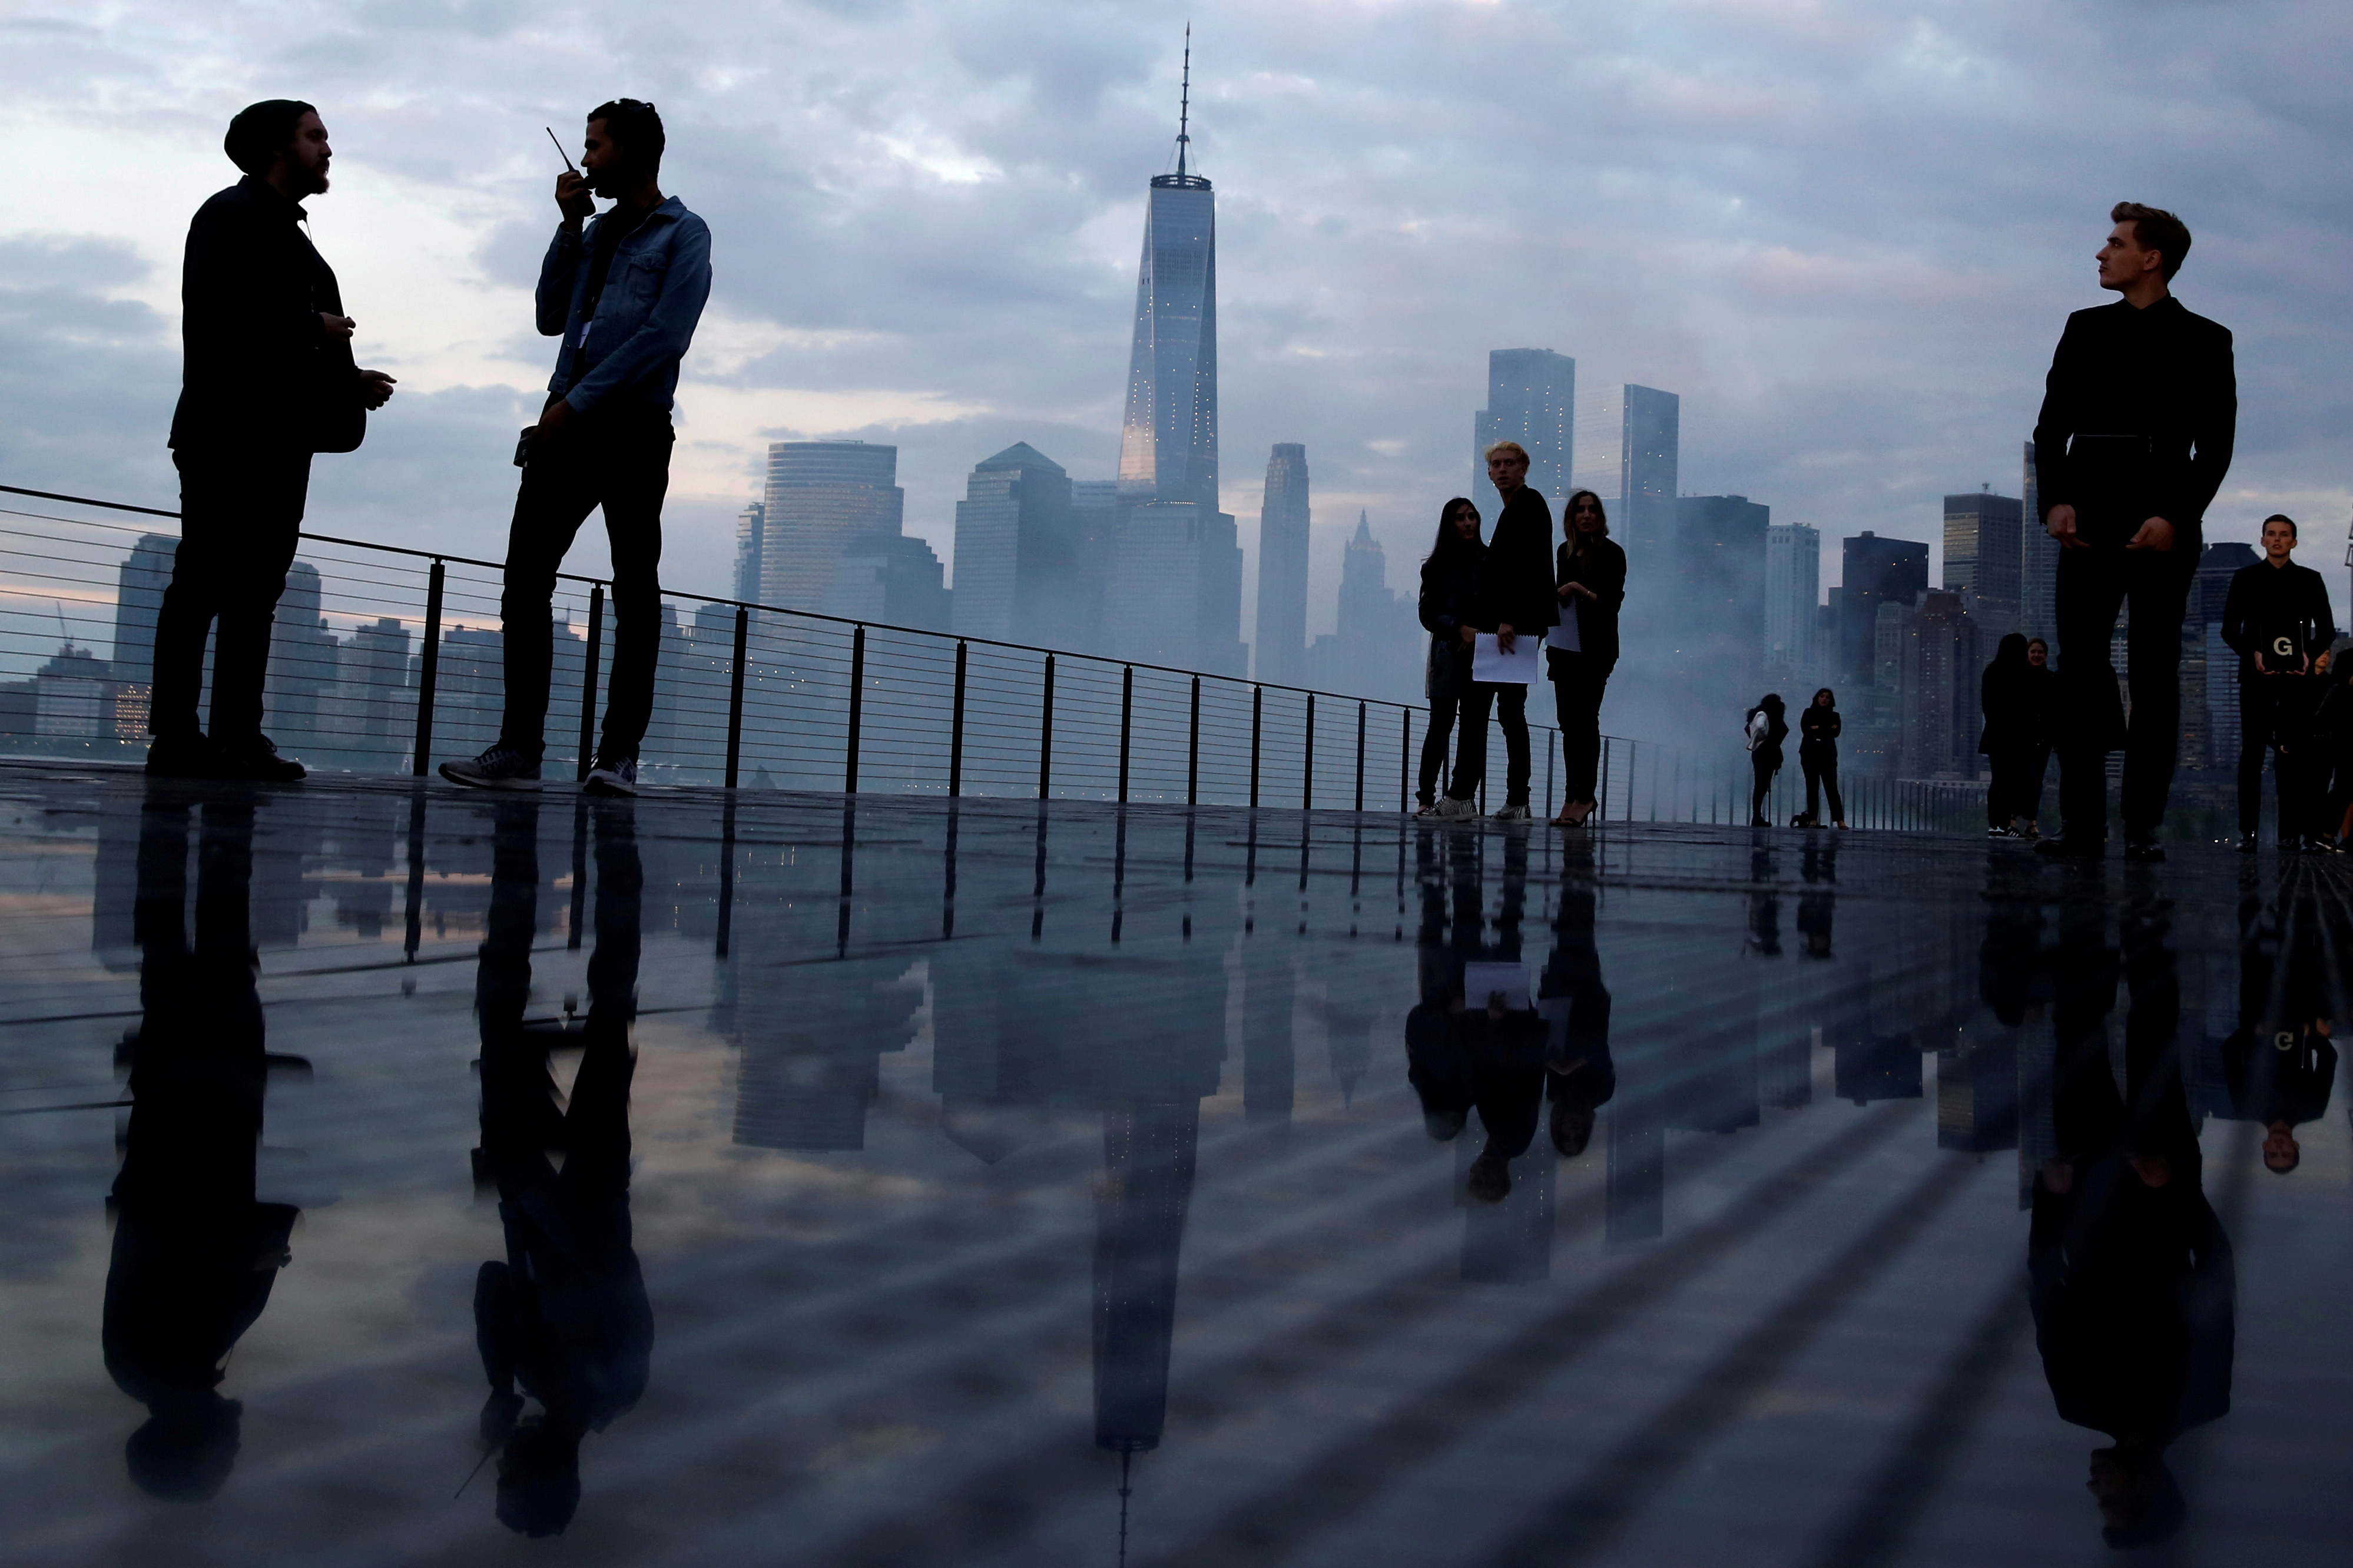 The skyline of downtown Manhattan is seen as people gather on the runway before the Saint Laurent Men's Spring/Summer 2019 collection presentation in Liberty State Park in New Jersey, U.S., June 6, 2018.  REUTERS/Andrew Kelly/File Photo